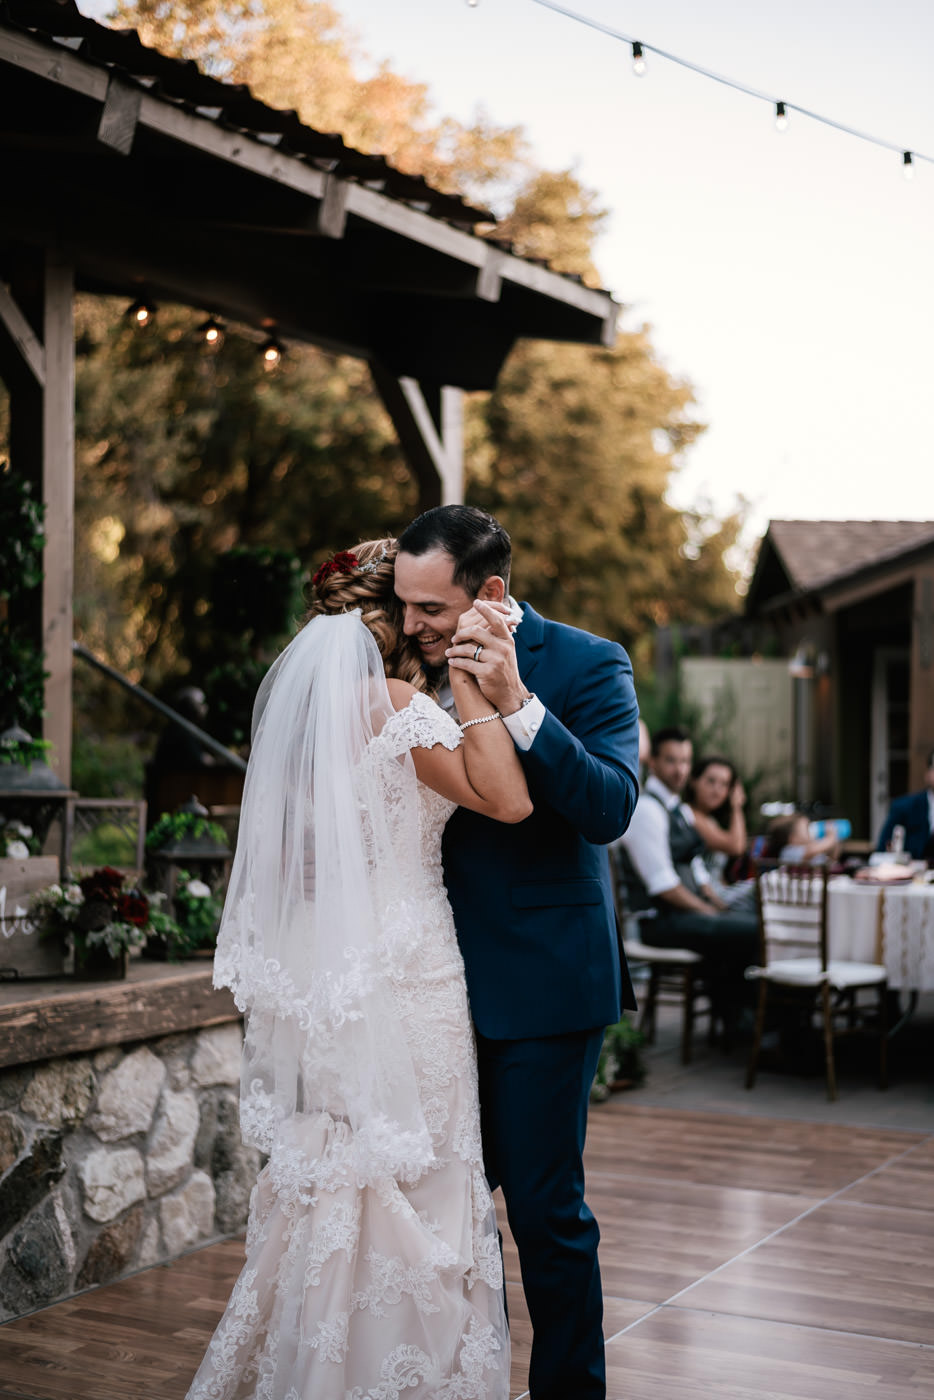 Romantic first dance photos at The Homestead at Wilshire Ranch in Oak Glen California.